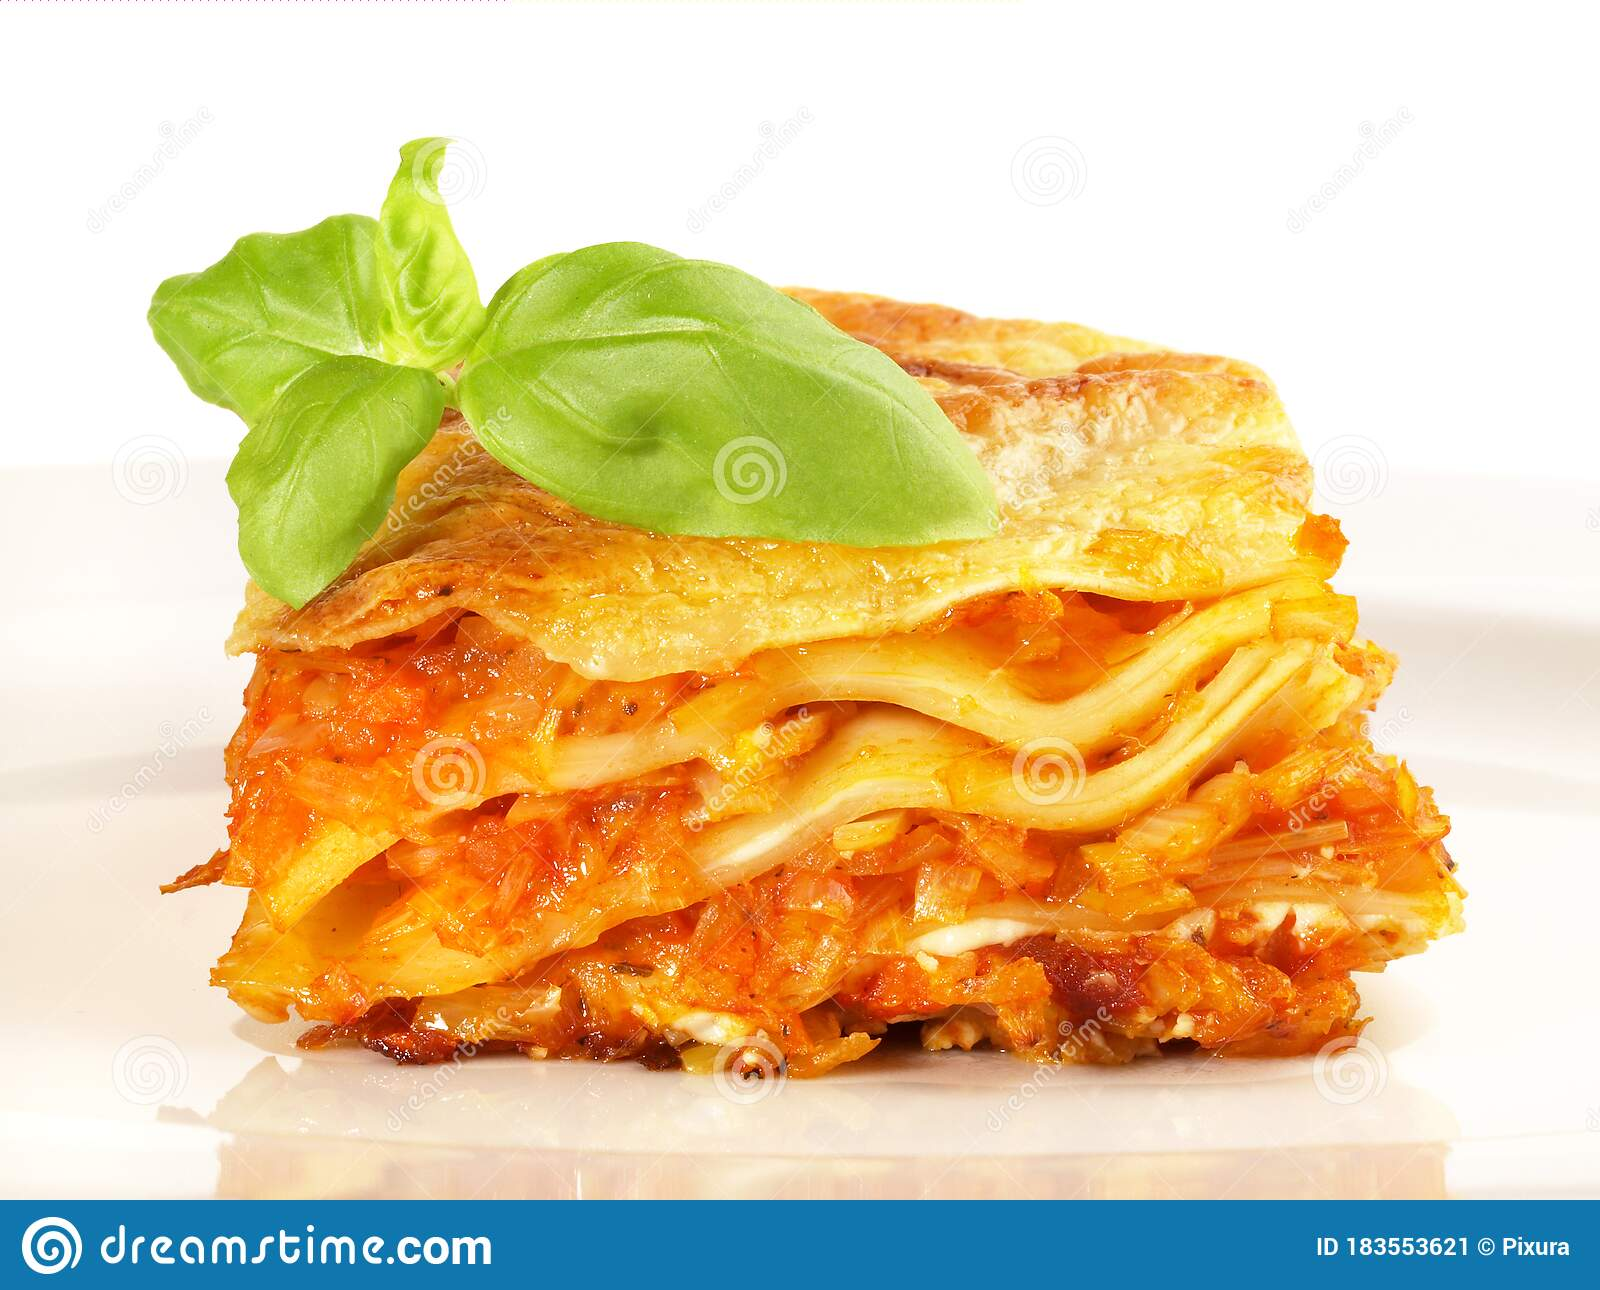 Vegetarian Vegetable Lasagne With Isolated On White Background Stock Image Image Of Food Cream 183553621